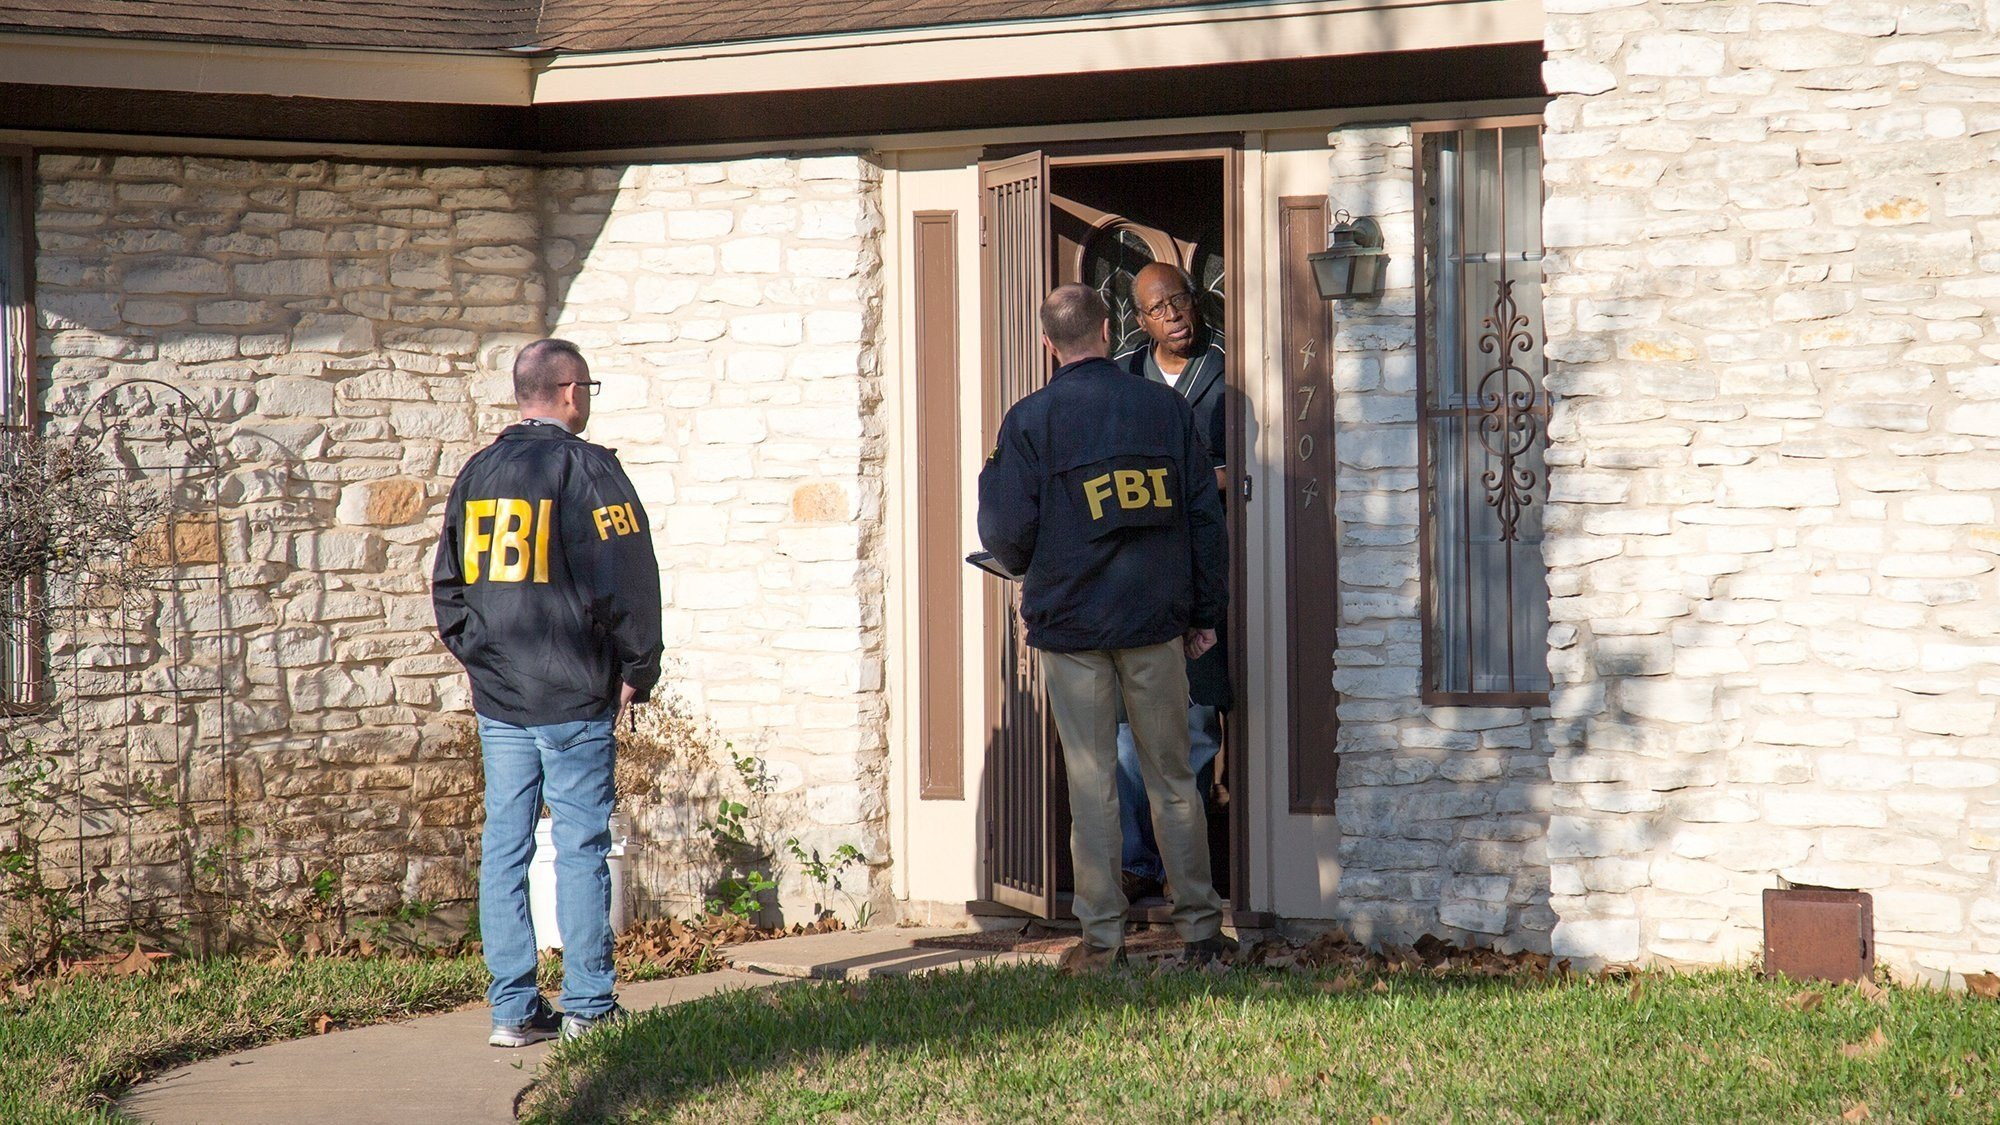 The pair of explosions that left two people dead in Austin, Texas, over the last 10 days share similarities and authorities suspect they are connected, police said.